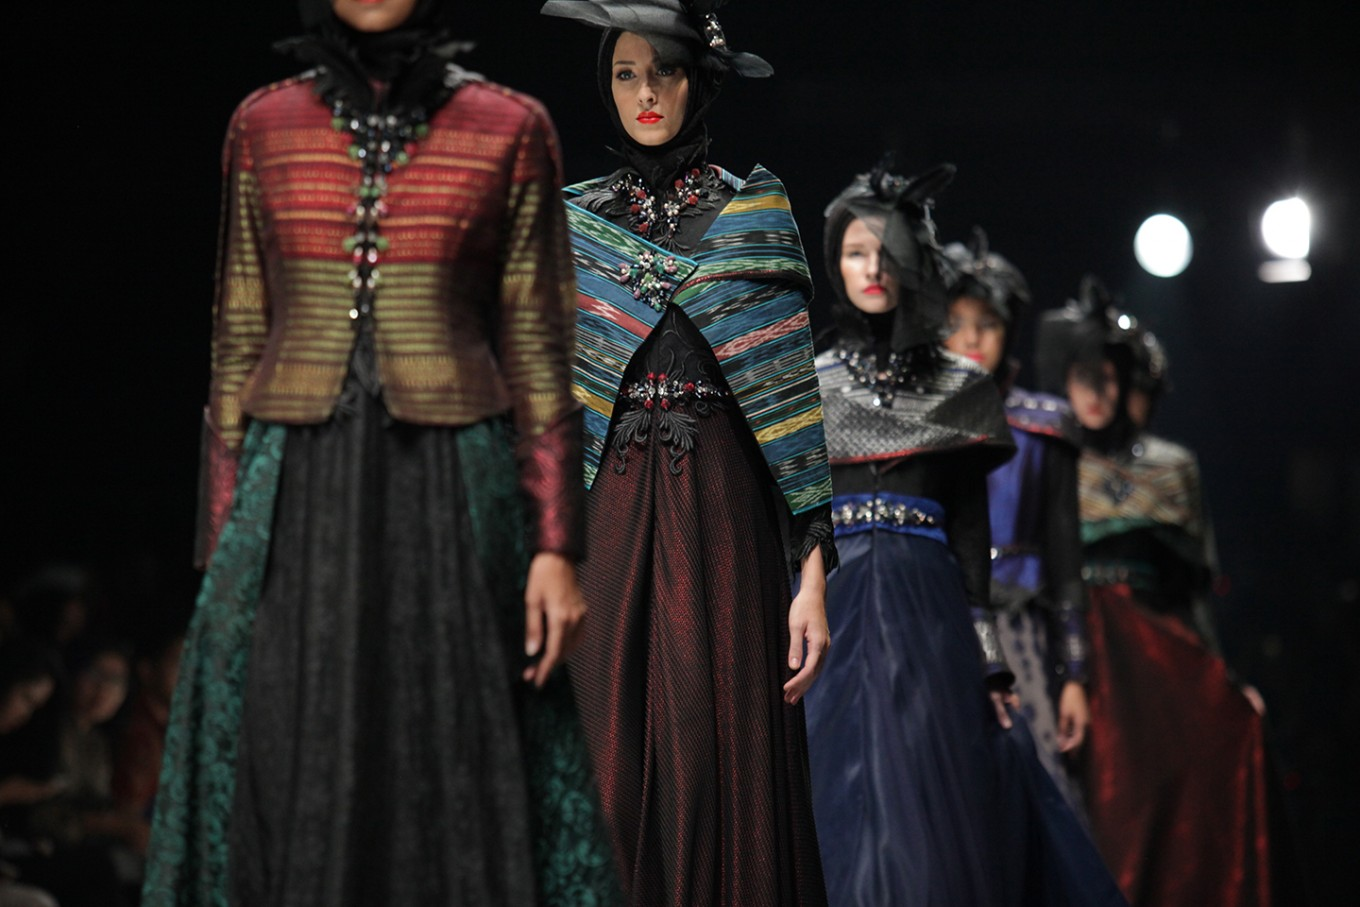 Indonesia Fashion Week 2017 to showcase local crafts